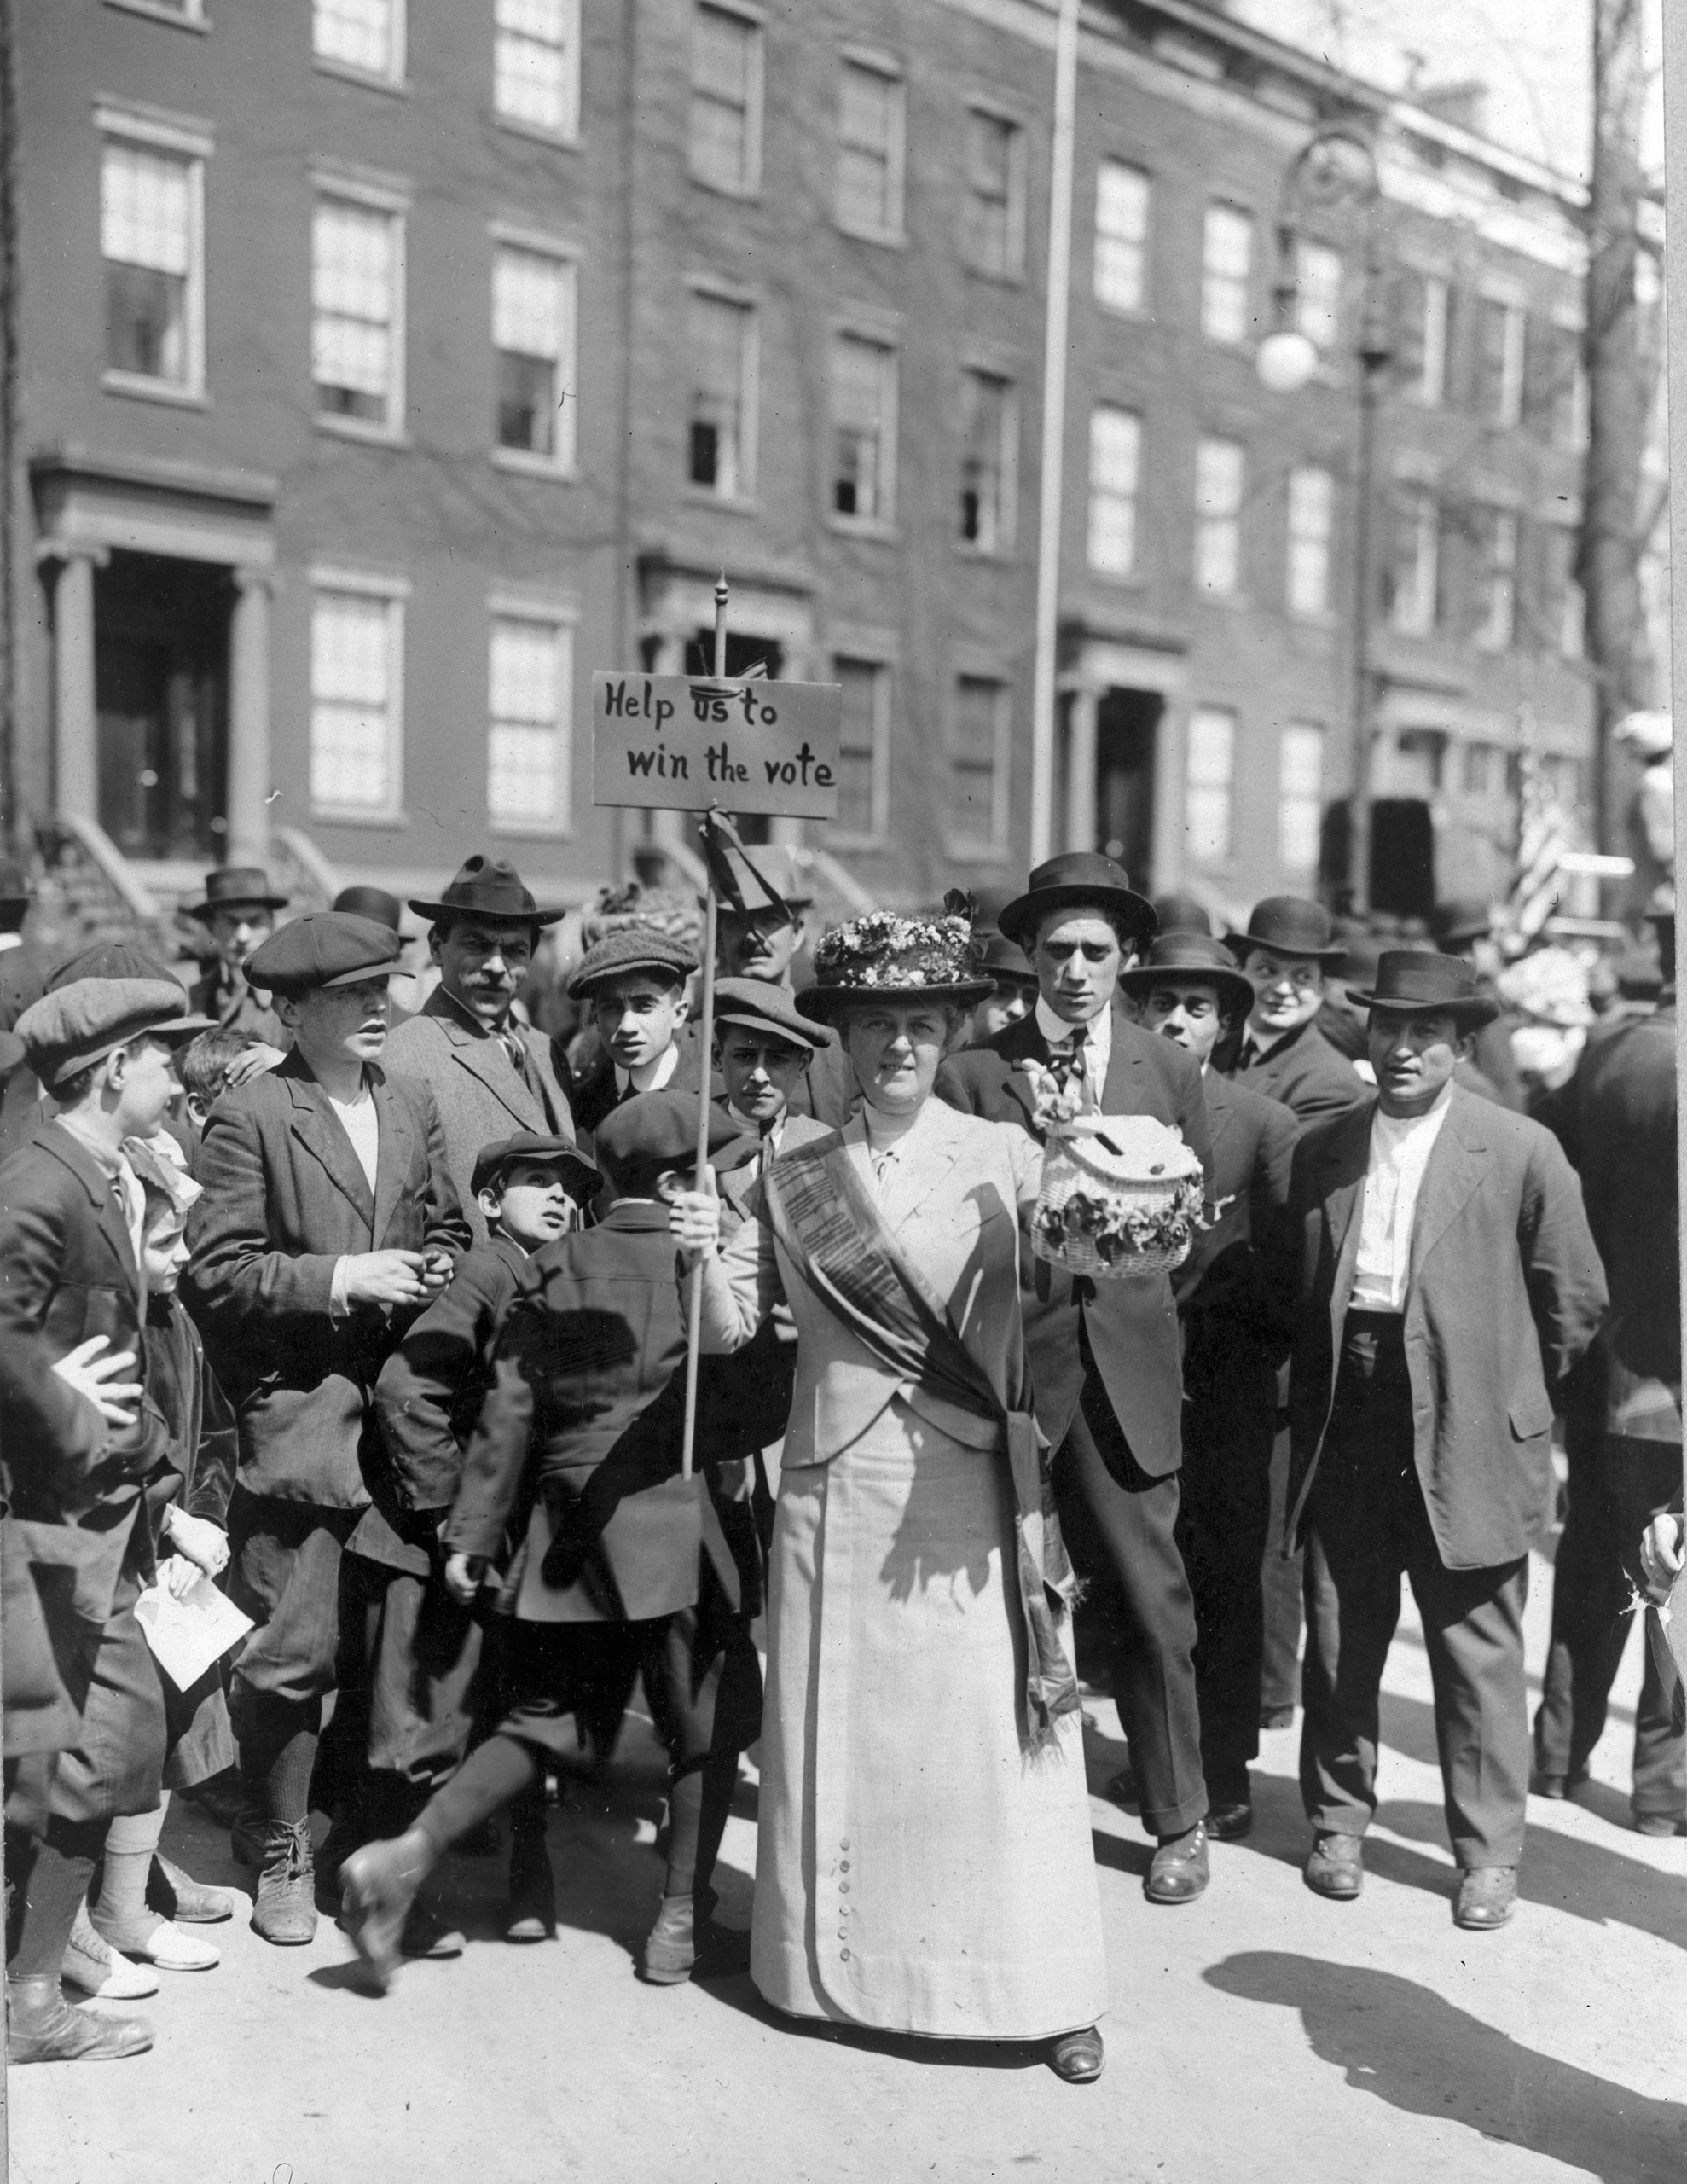 Mrs. Suffern wearing a sash and carrying a sign that says  Help us to win the vote,  surrounded by a crowd of men and boys at a Women's Suffrage Parade in 1914.